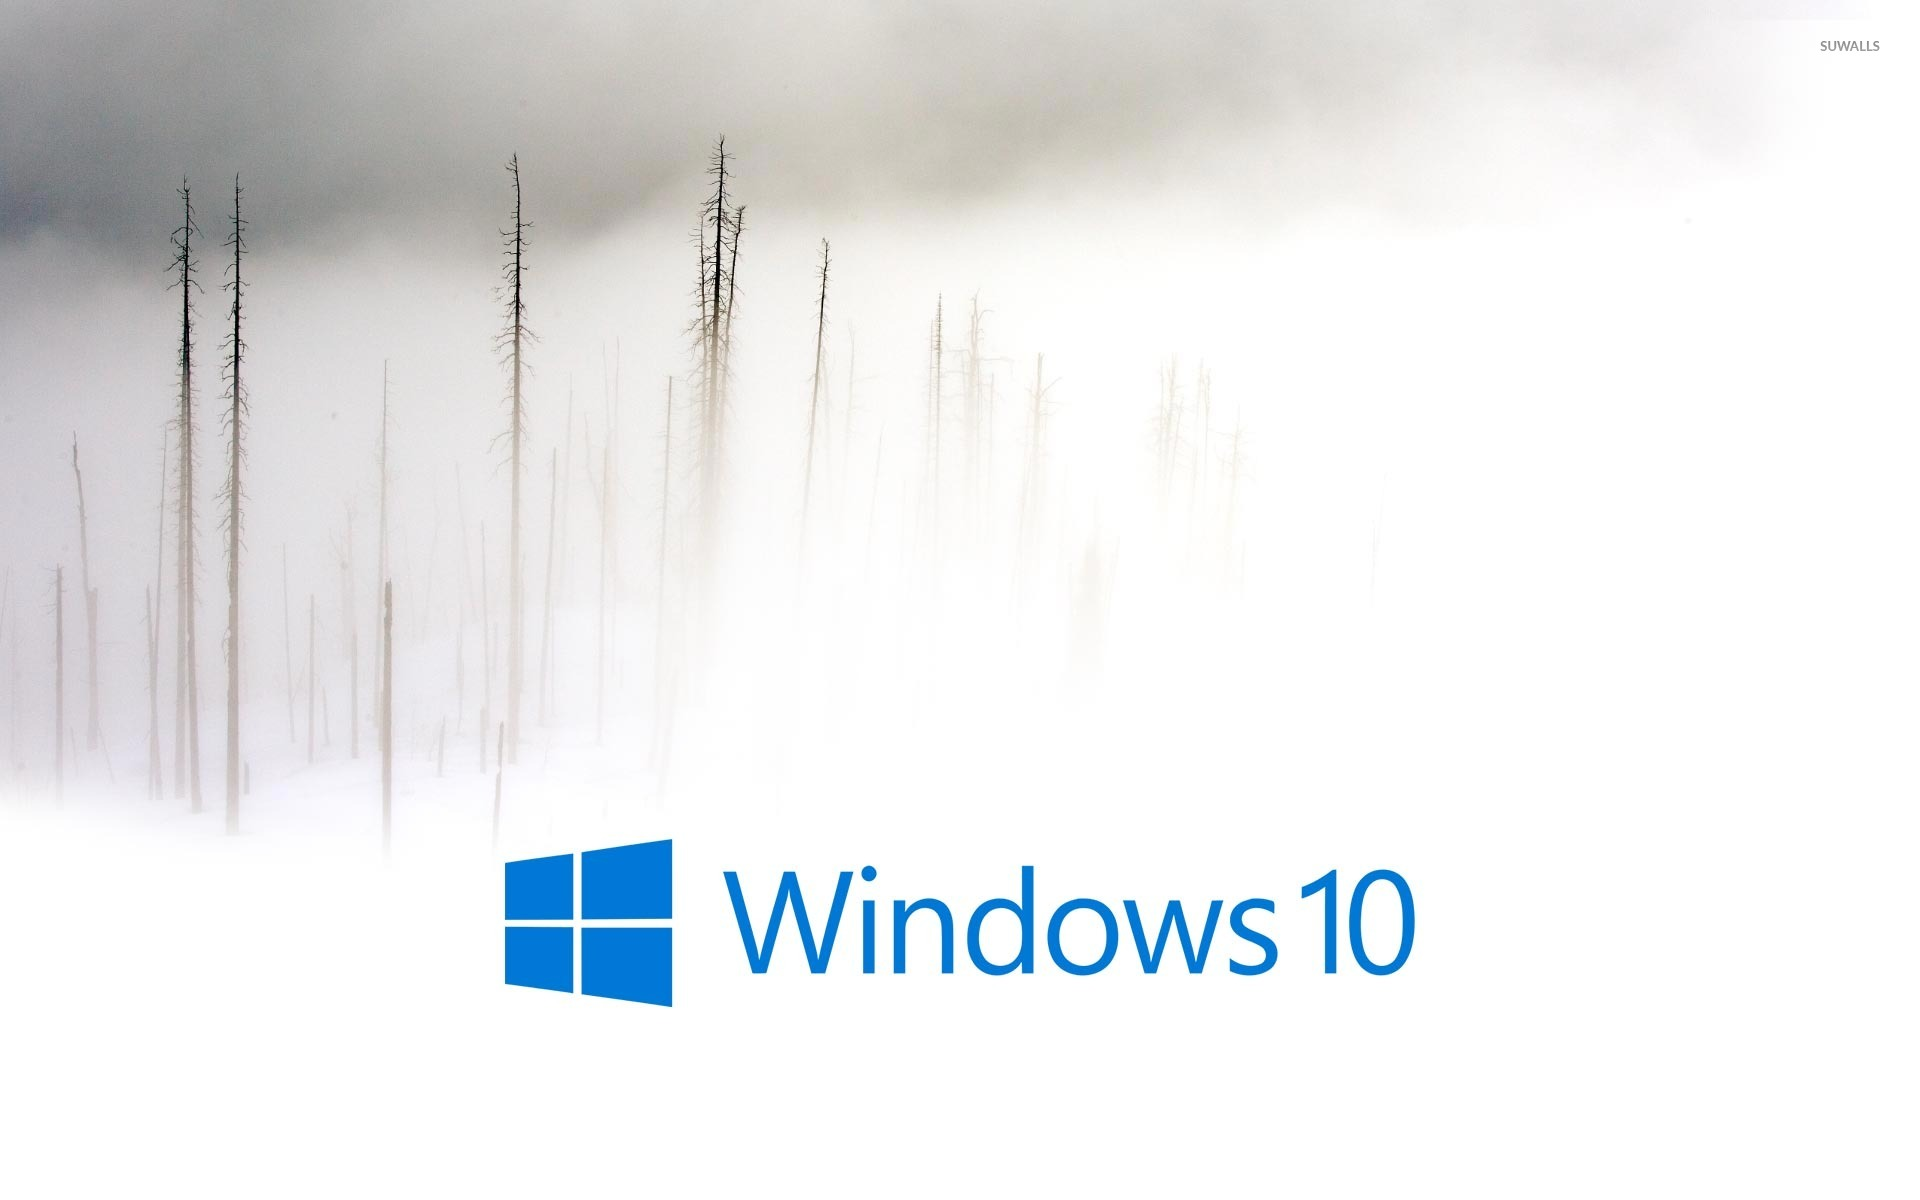 Windows 10 In The Foggy Winter Day Blue Text Logo Wallpaper